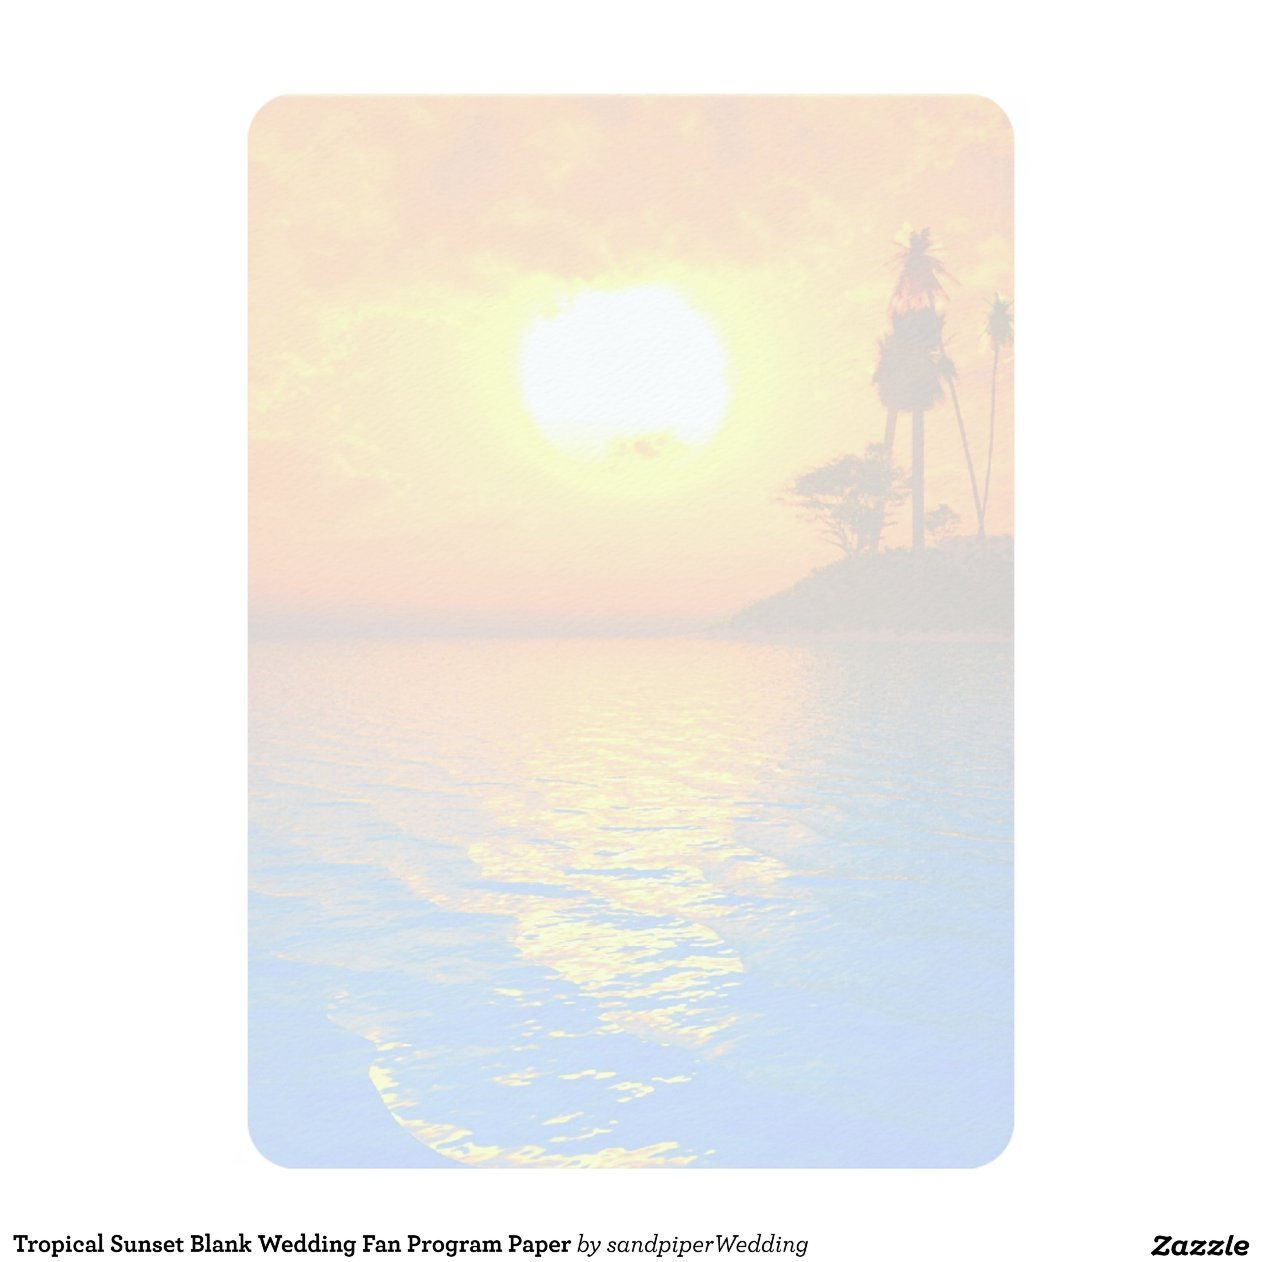 Tropical Sunset Blank Wedding Fan Program Paper 5x7 Paper. Wedding Gowns Rates. Wedding Hairstyles To Hide Double Chin. Wedding Knickers. Beach Wedding Dresses Under 200. Planning For A Wedding In Ghana. Mexican Destination Wedding Invitations. Wedding Rentals Utah. Plus Size Wedding Dresses Columbia Sc